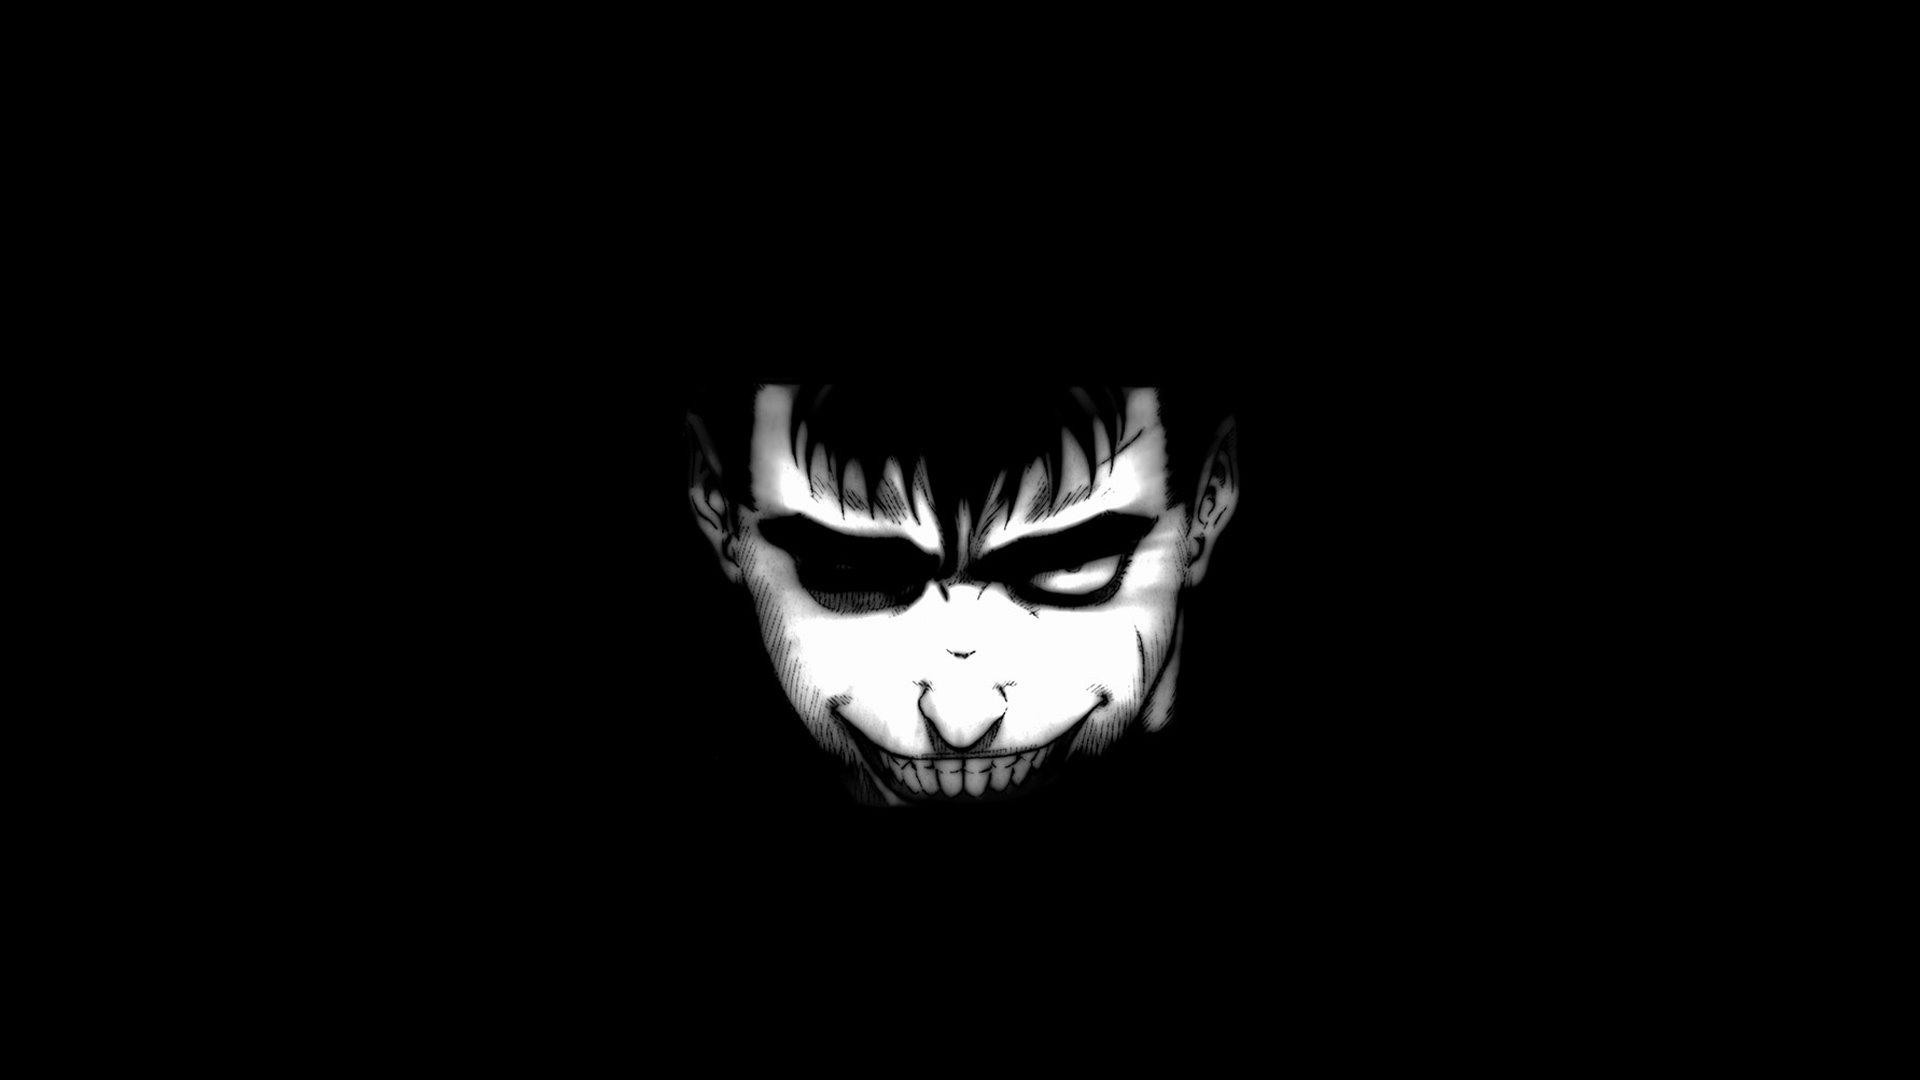 Res: 1920x1080, Berserk Anime Wallpaper   Wallpaper Studio 10   Tens of thousands HD and  UltraHD wallpapers for Android, Windows and Xbox